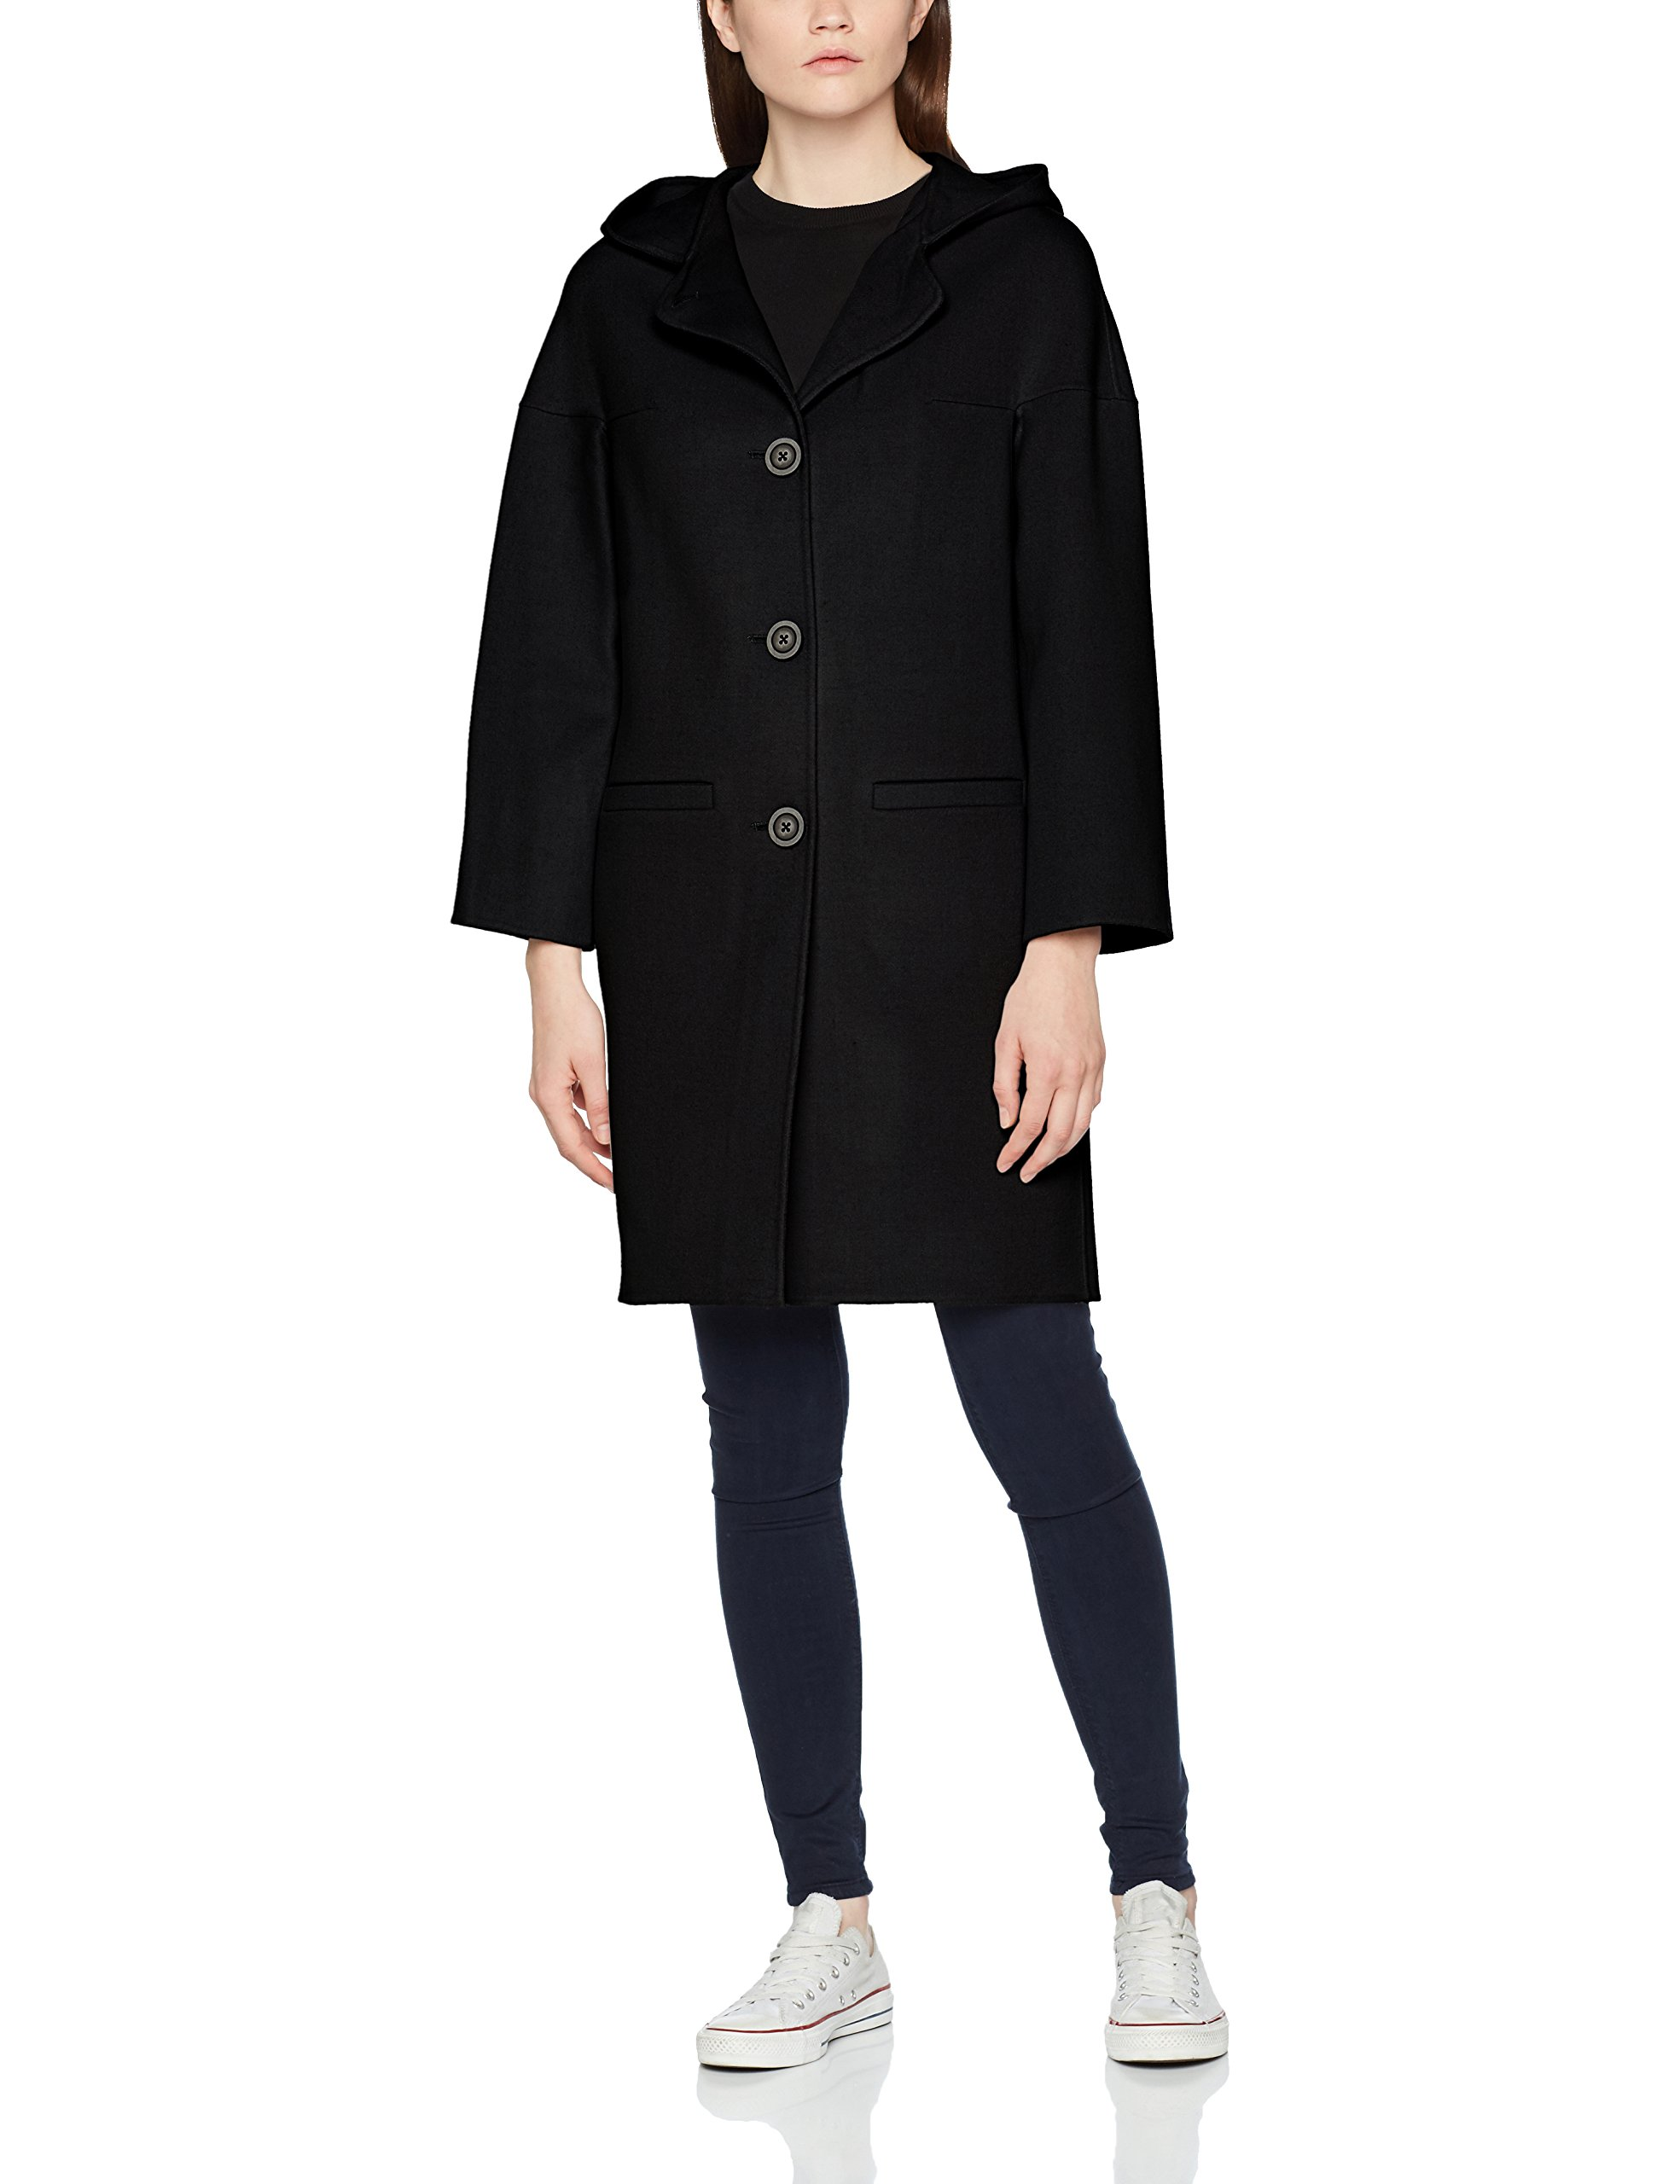 Double Facenoirtaille Fabricant42Femme Cacharel Facenoirtaille Fabricant42Femme Manteau Manteau Double Cacharel Cacharel Manteau Double KuFJc35Tl1